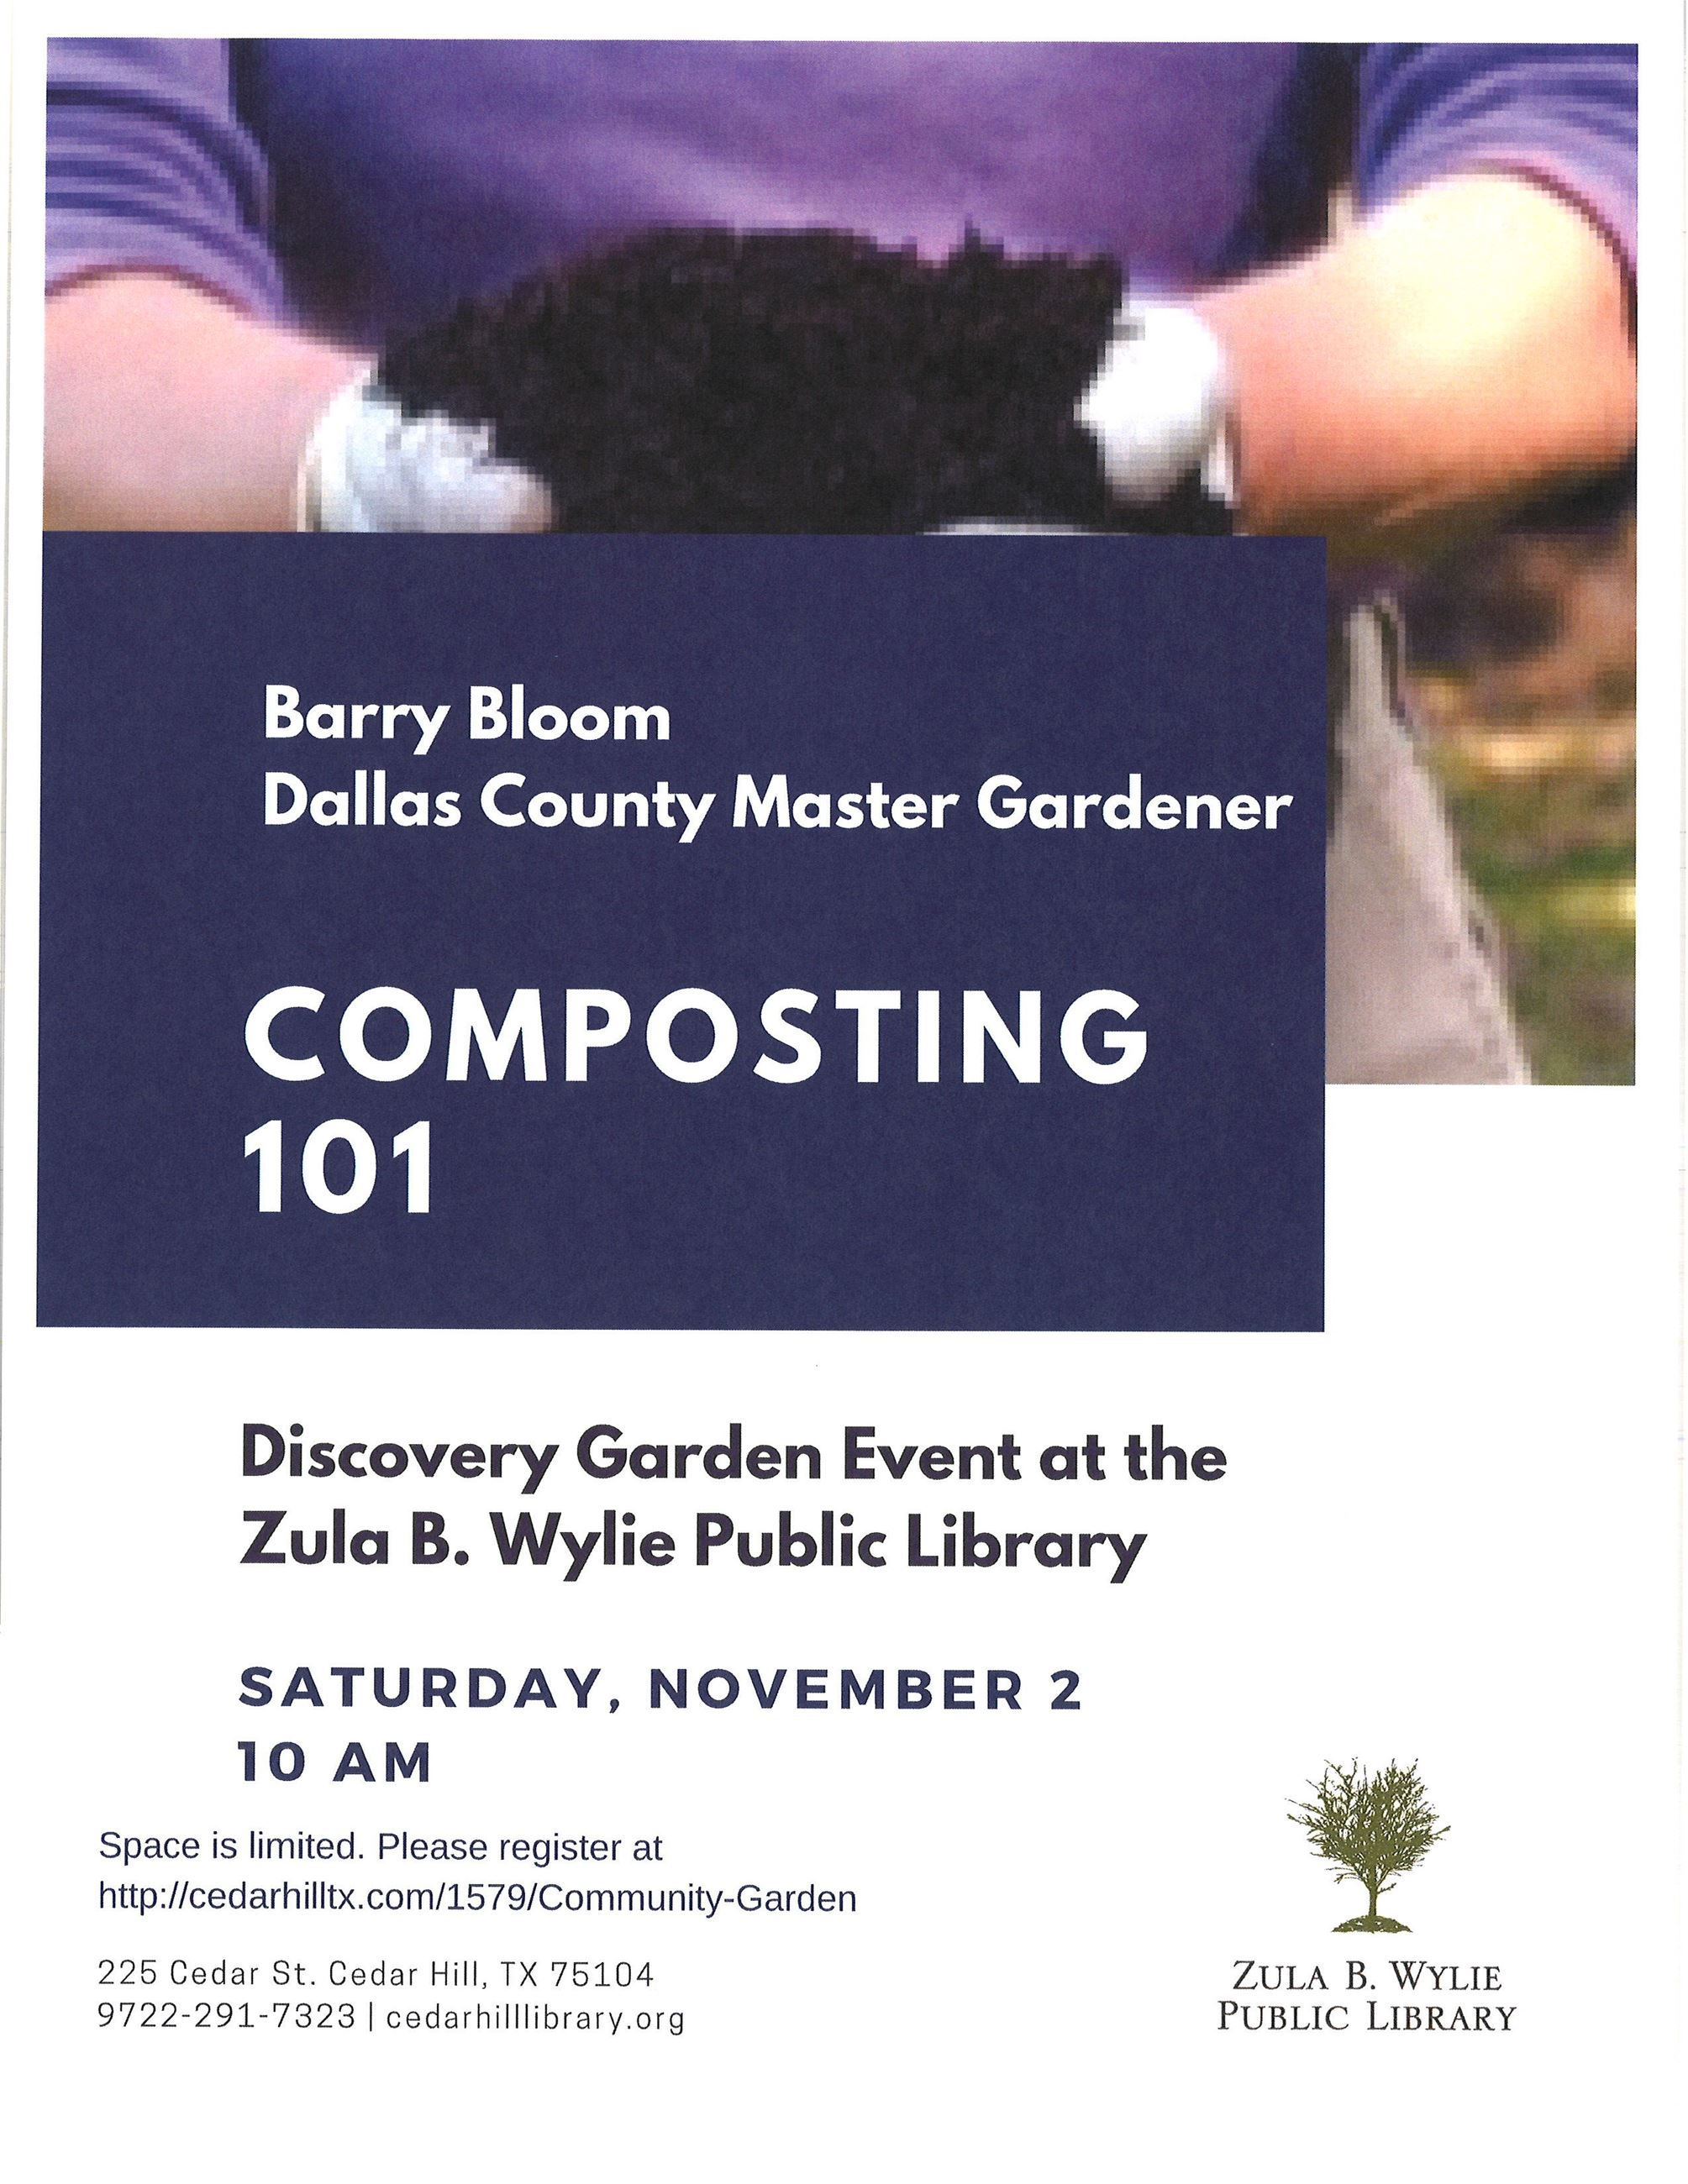 composting 101 with Barry Bloom